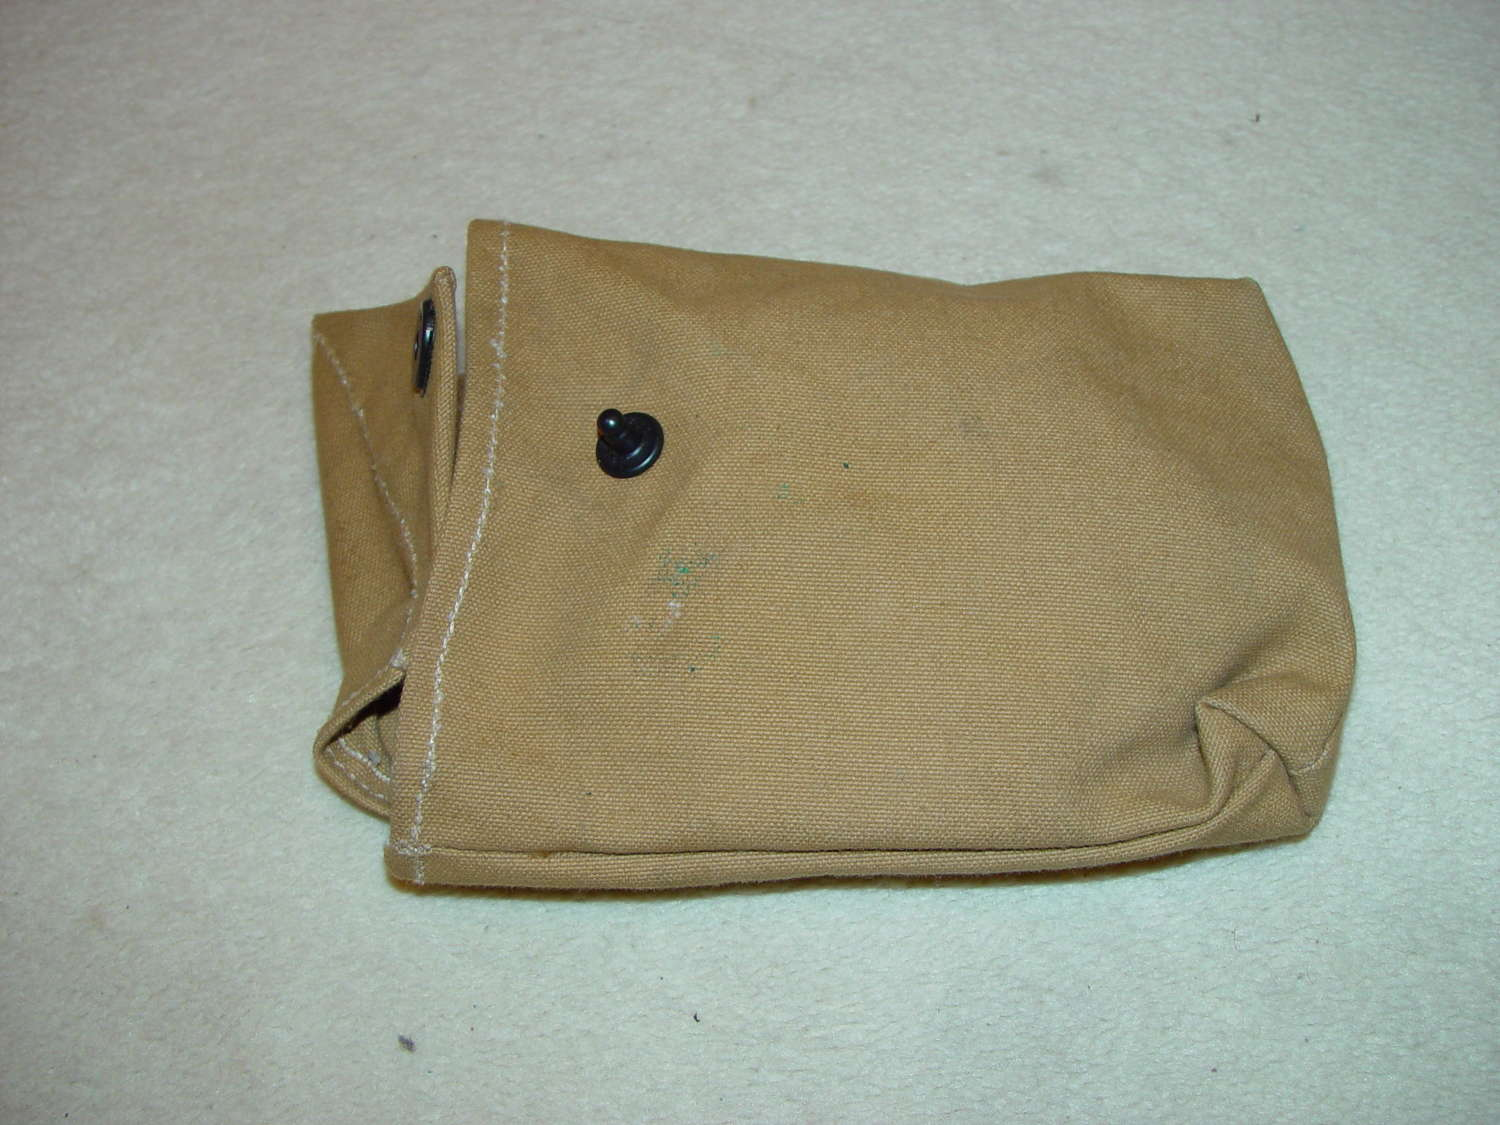 Rigger made grenade pouch for airborne troops